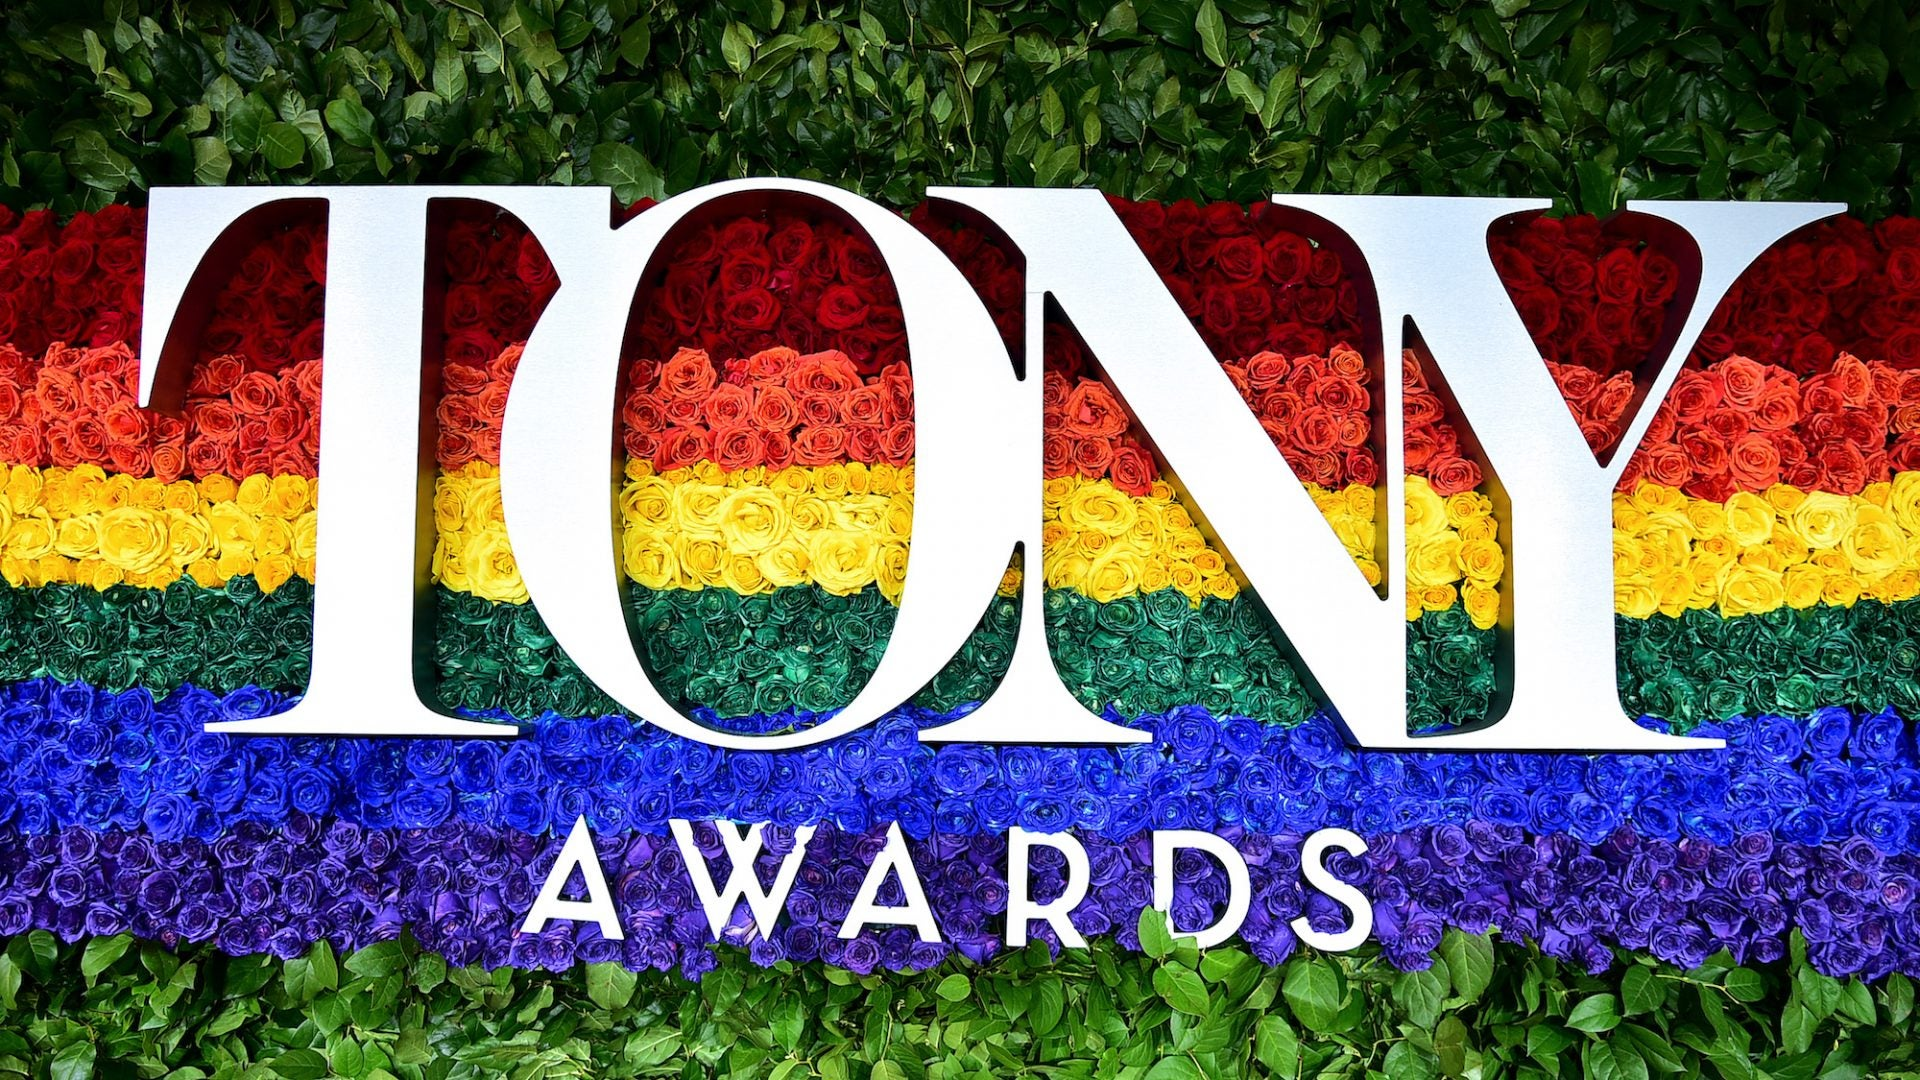 Tony Awards To Go Virtual In 2020 Due To COVID-19